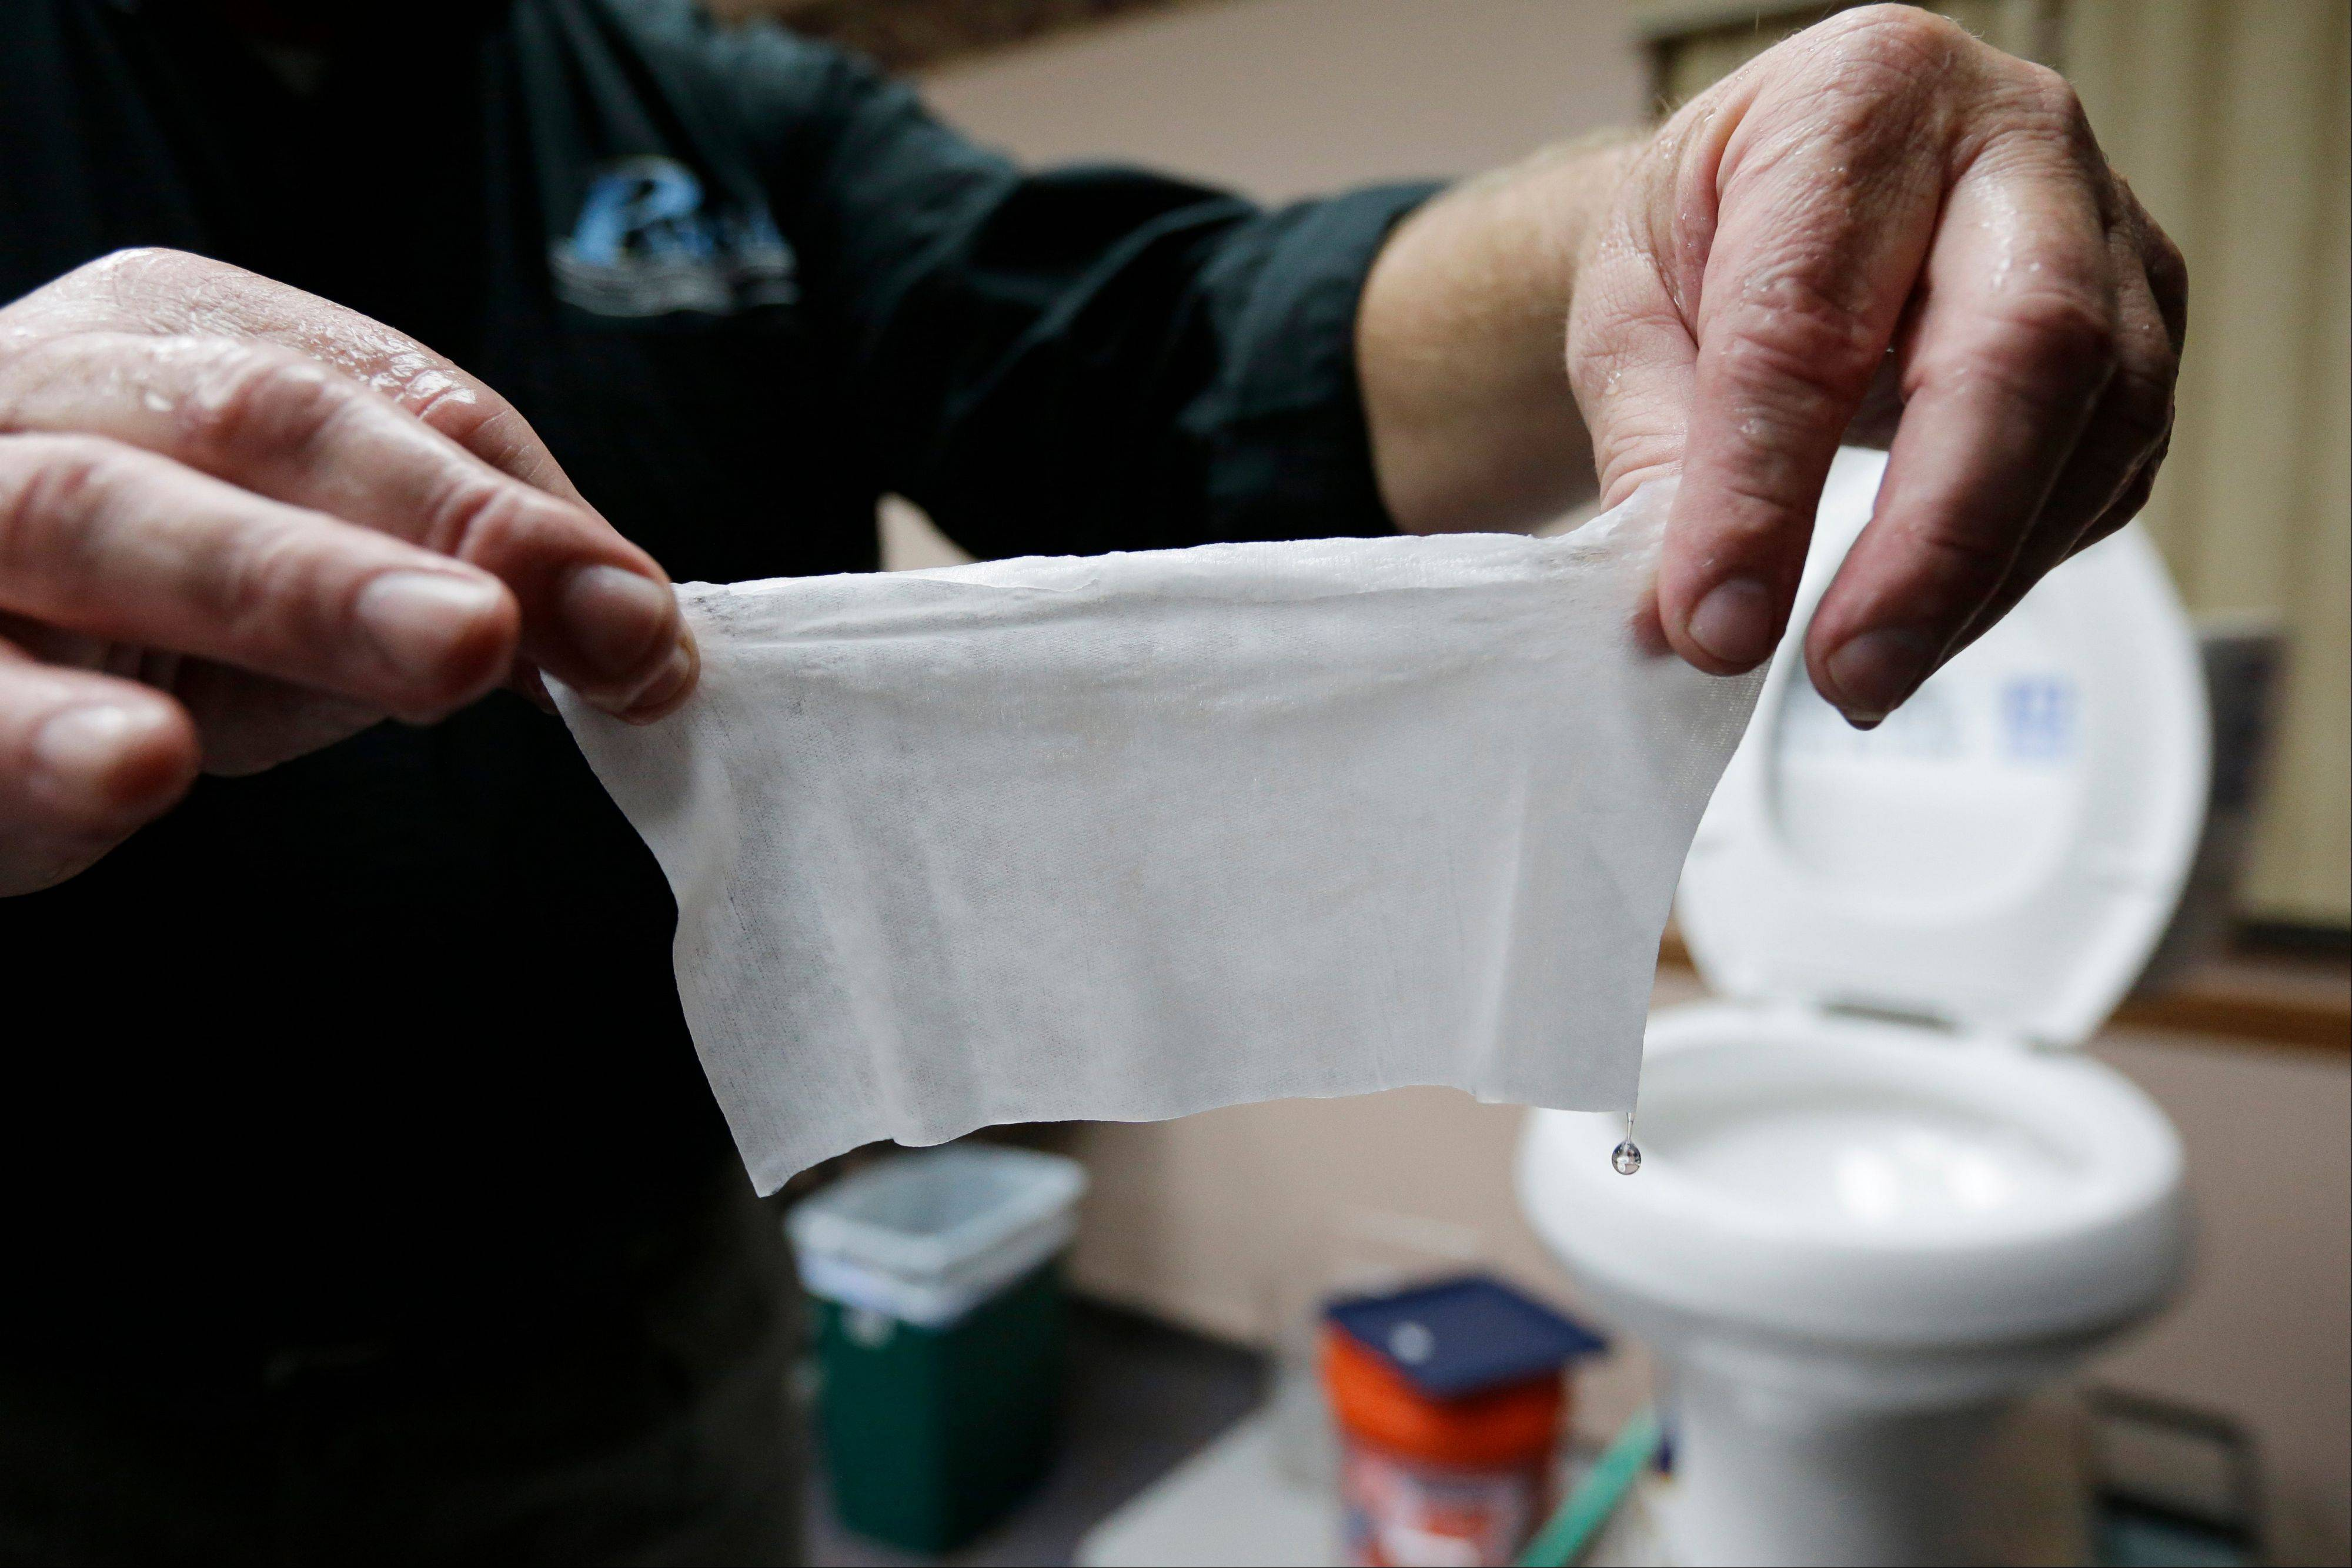 Rob Villee, executive director of the Plainfield Area Regional Sewer Authority in New Jersey, holds up a wipe he flushed through his test toilet in his office. Increasingly popular bathroom wipes, thick, premoistened towelettes that are advertised as flushable, are creating clogs and backups in sewer systems around the nation.